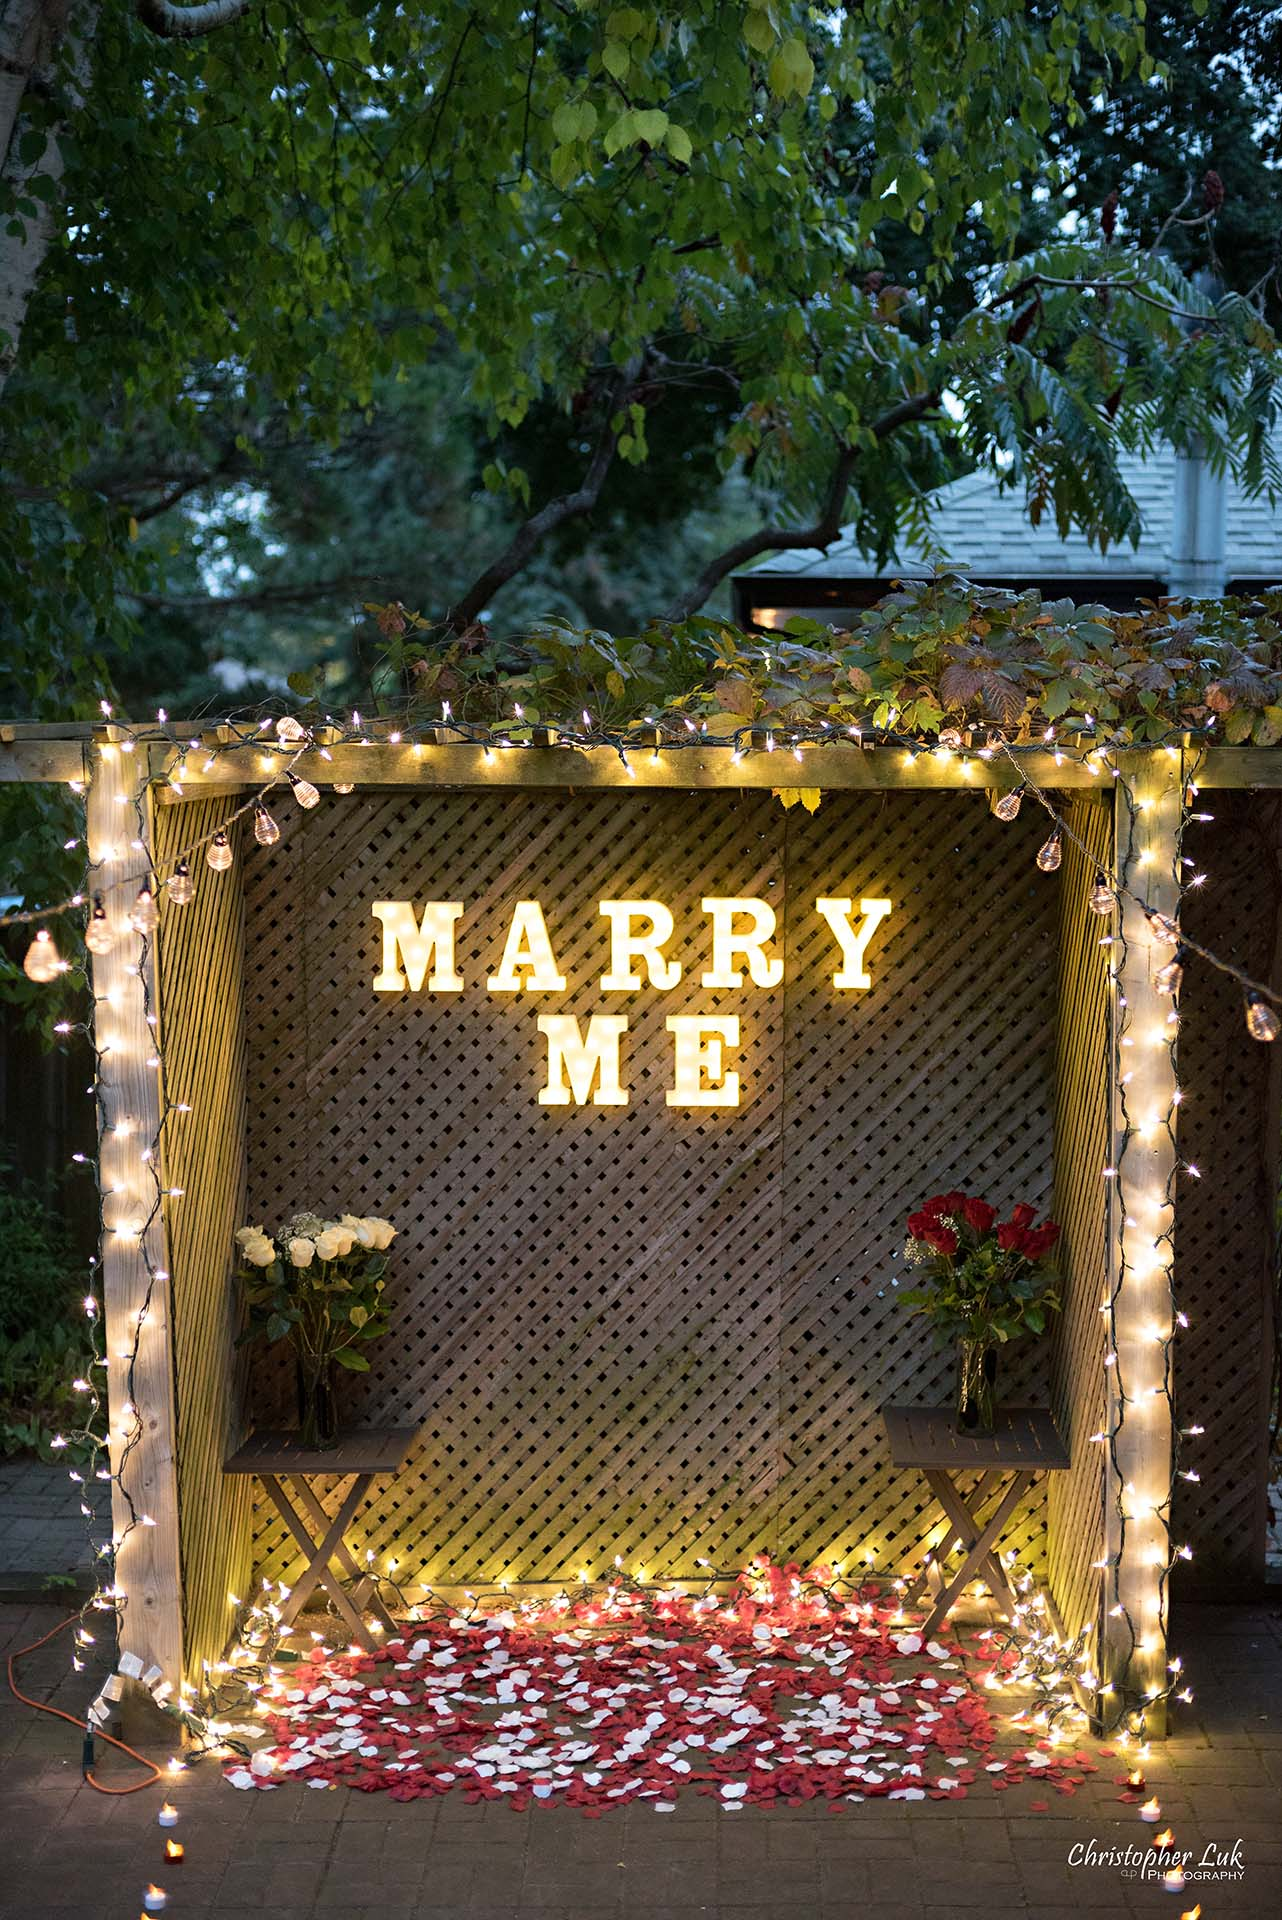 Christopher Luk Toronto Wedding Photographer - Backyard Surprise Proposal Engaged Engagement Gazebo Christmas Fairy Twinkle Lights Flower Petals Marry Me Wide Lights Setup Vertical